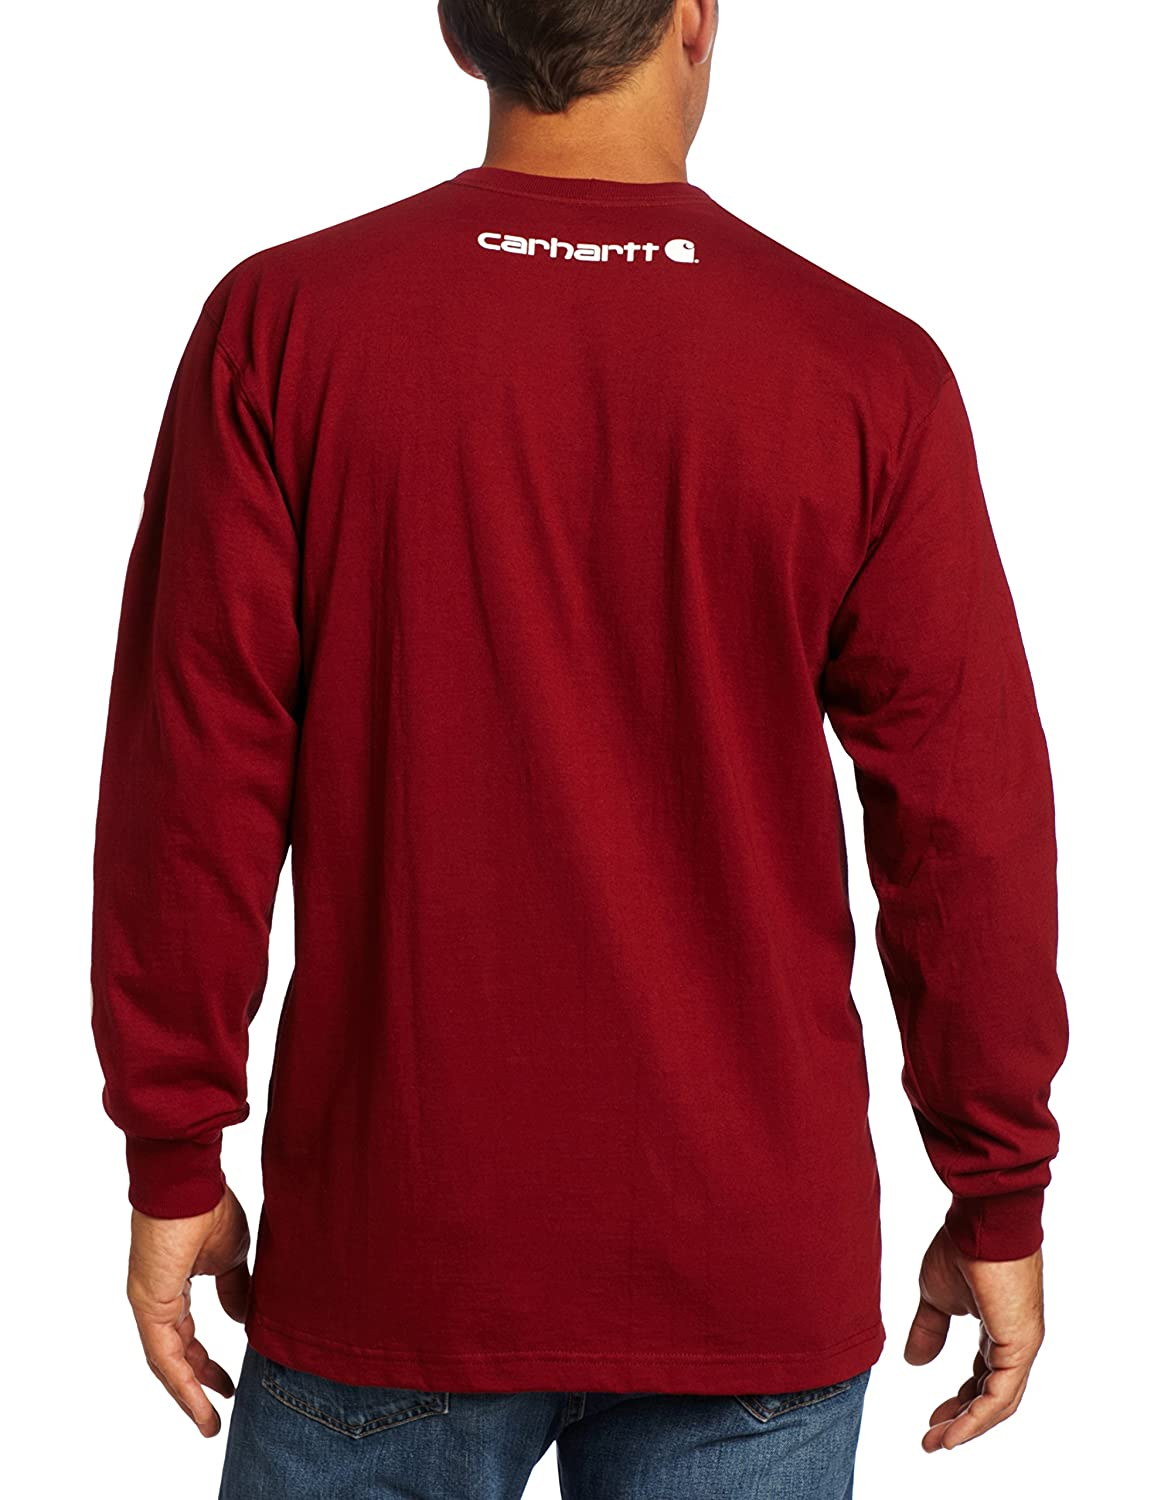 Carhartt Mens Signature Sleeve Logo Long Sleeve T-Shirt